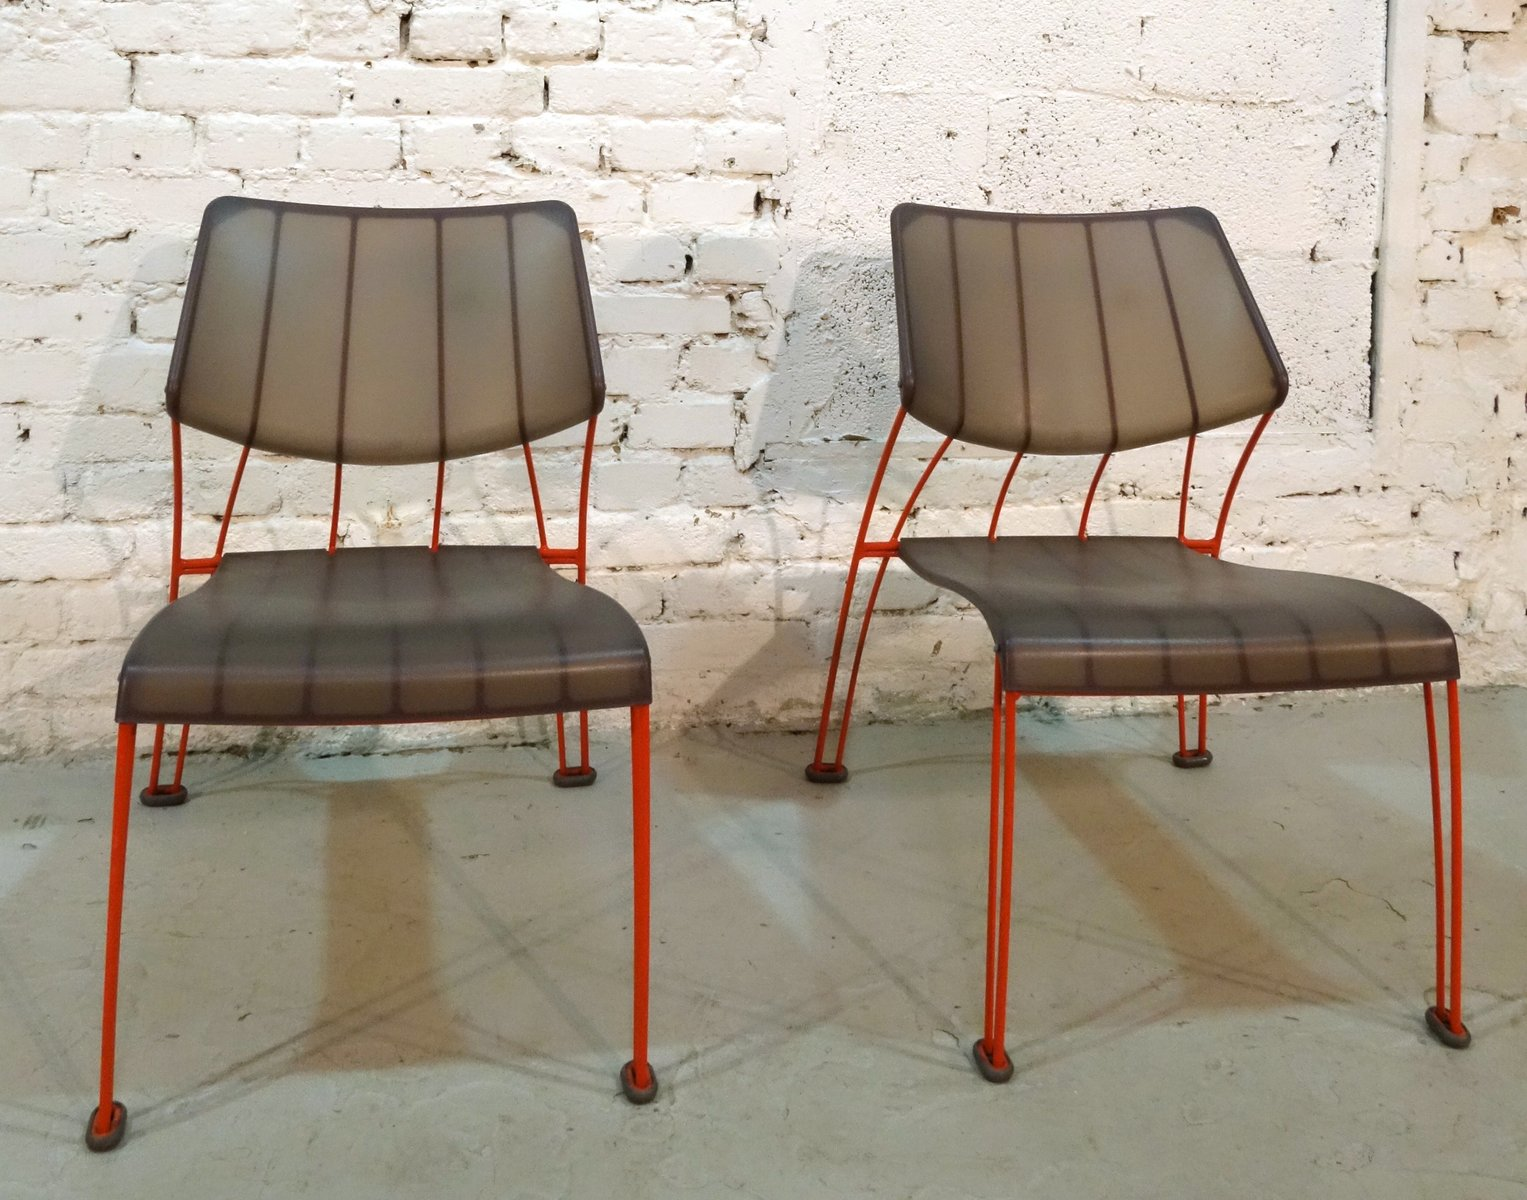 Lounge Stoel Ikea : Ps hasslo chairs by monika mulder for ikea for sale at pamono